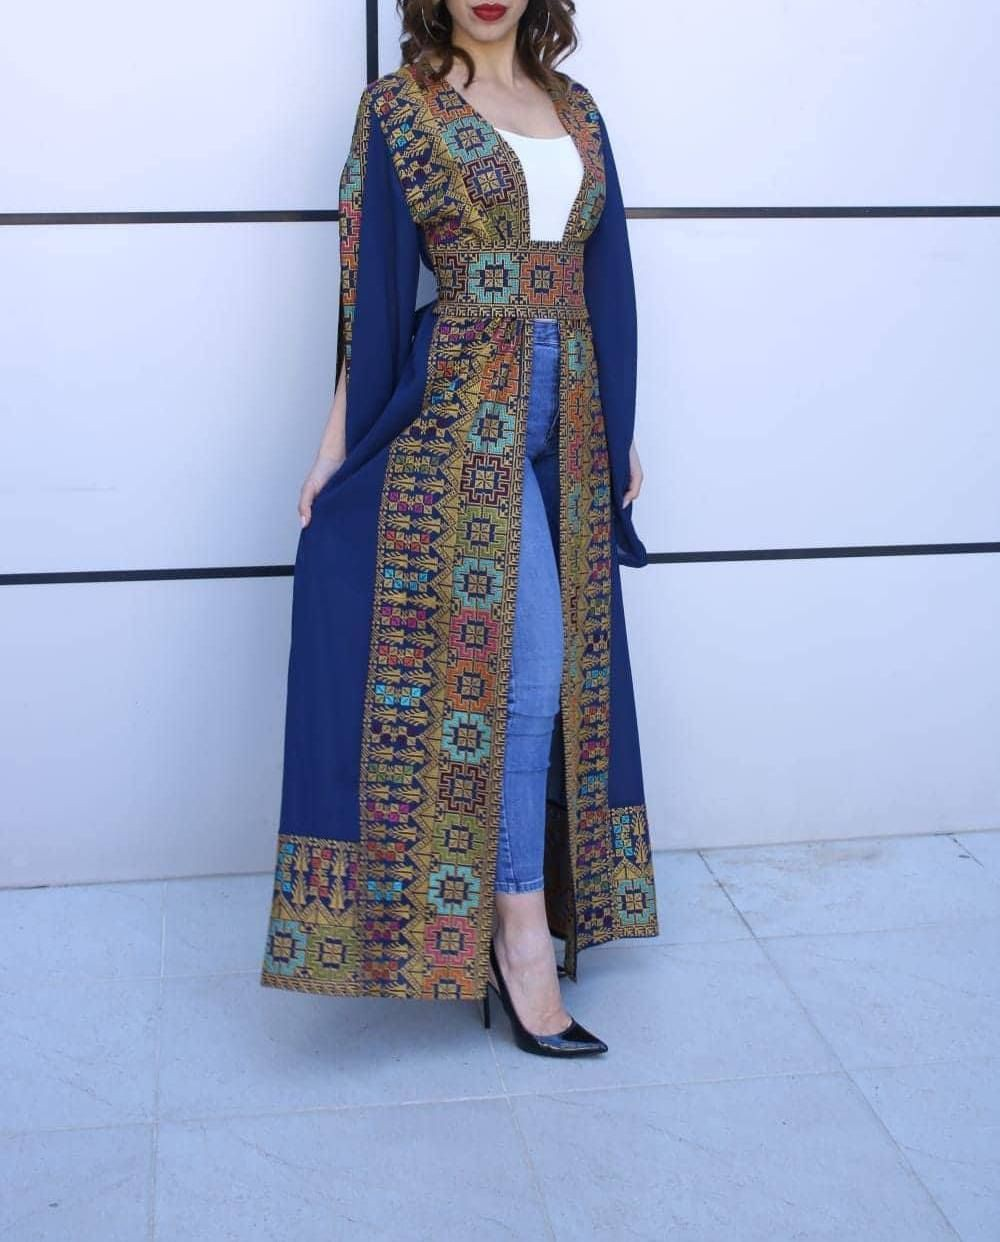 Blue outfit Pinterest with formal wear, embroidery, maxi dress